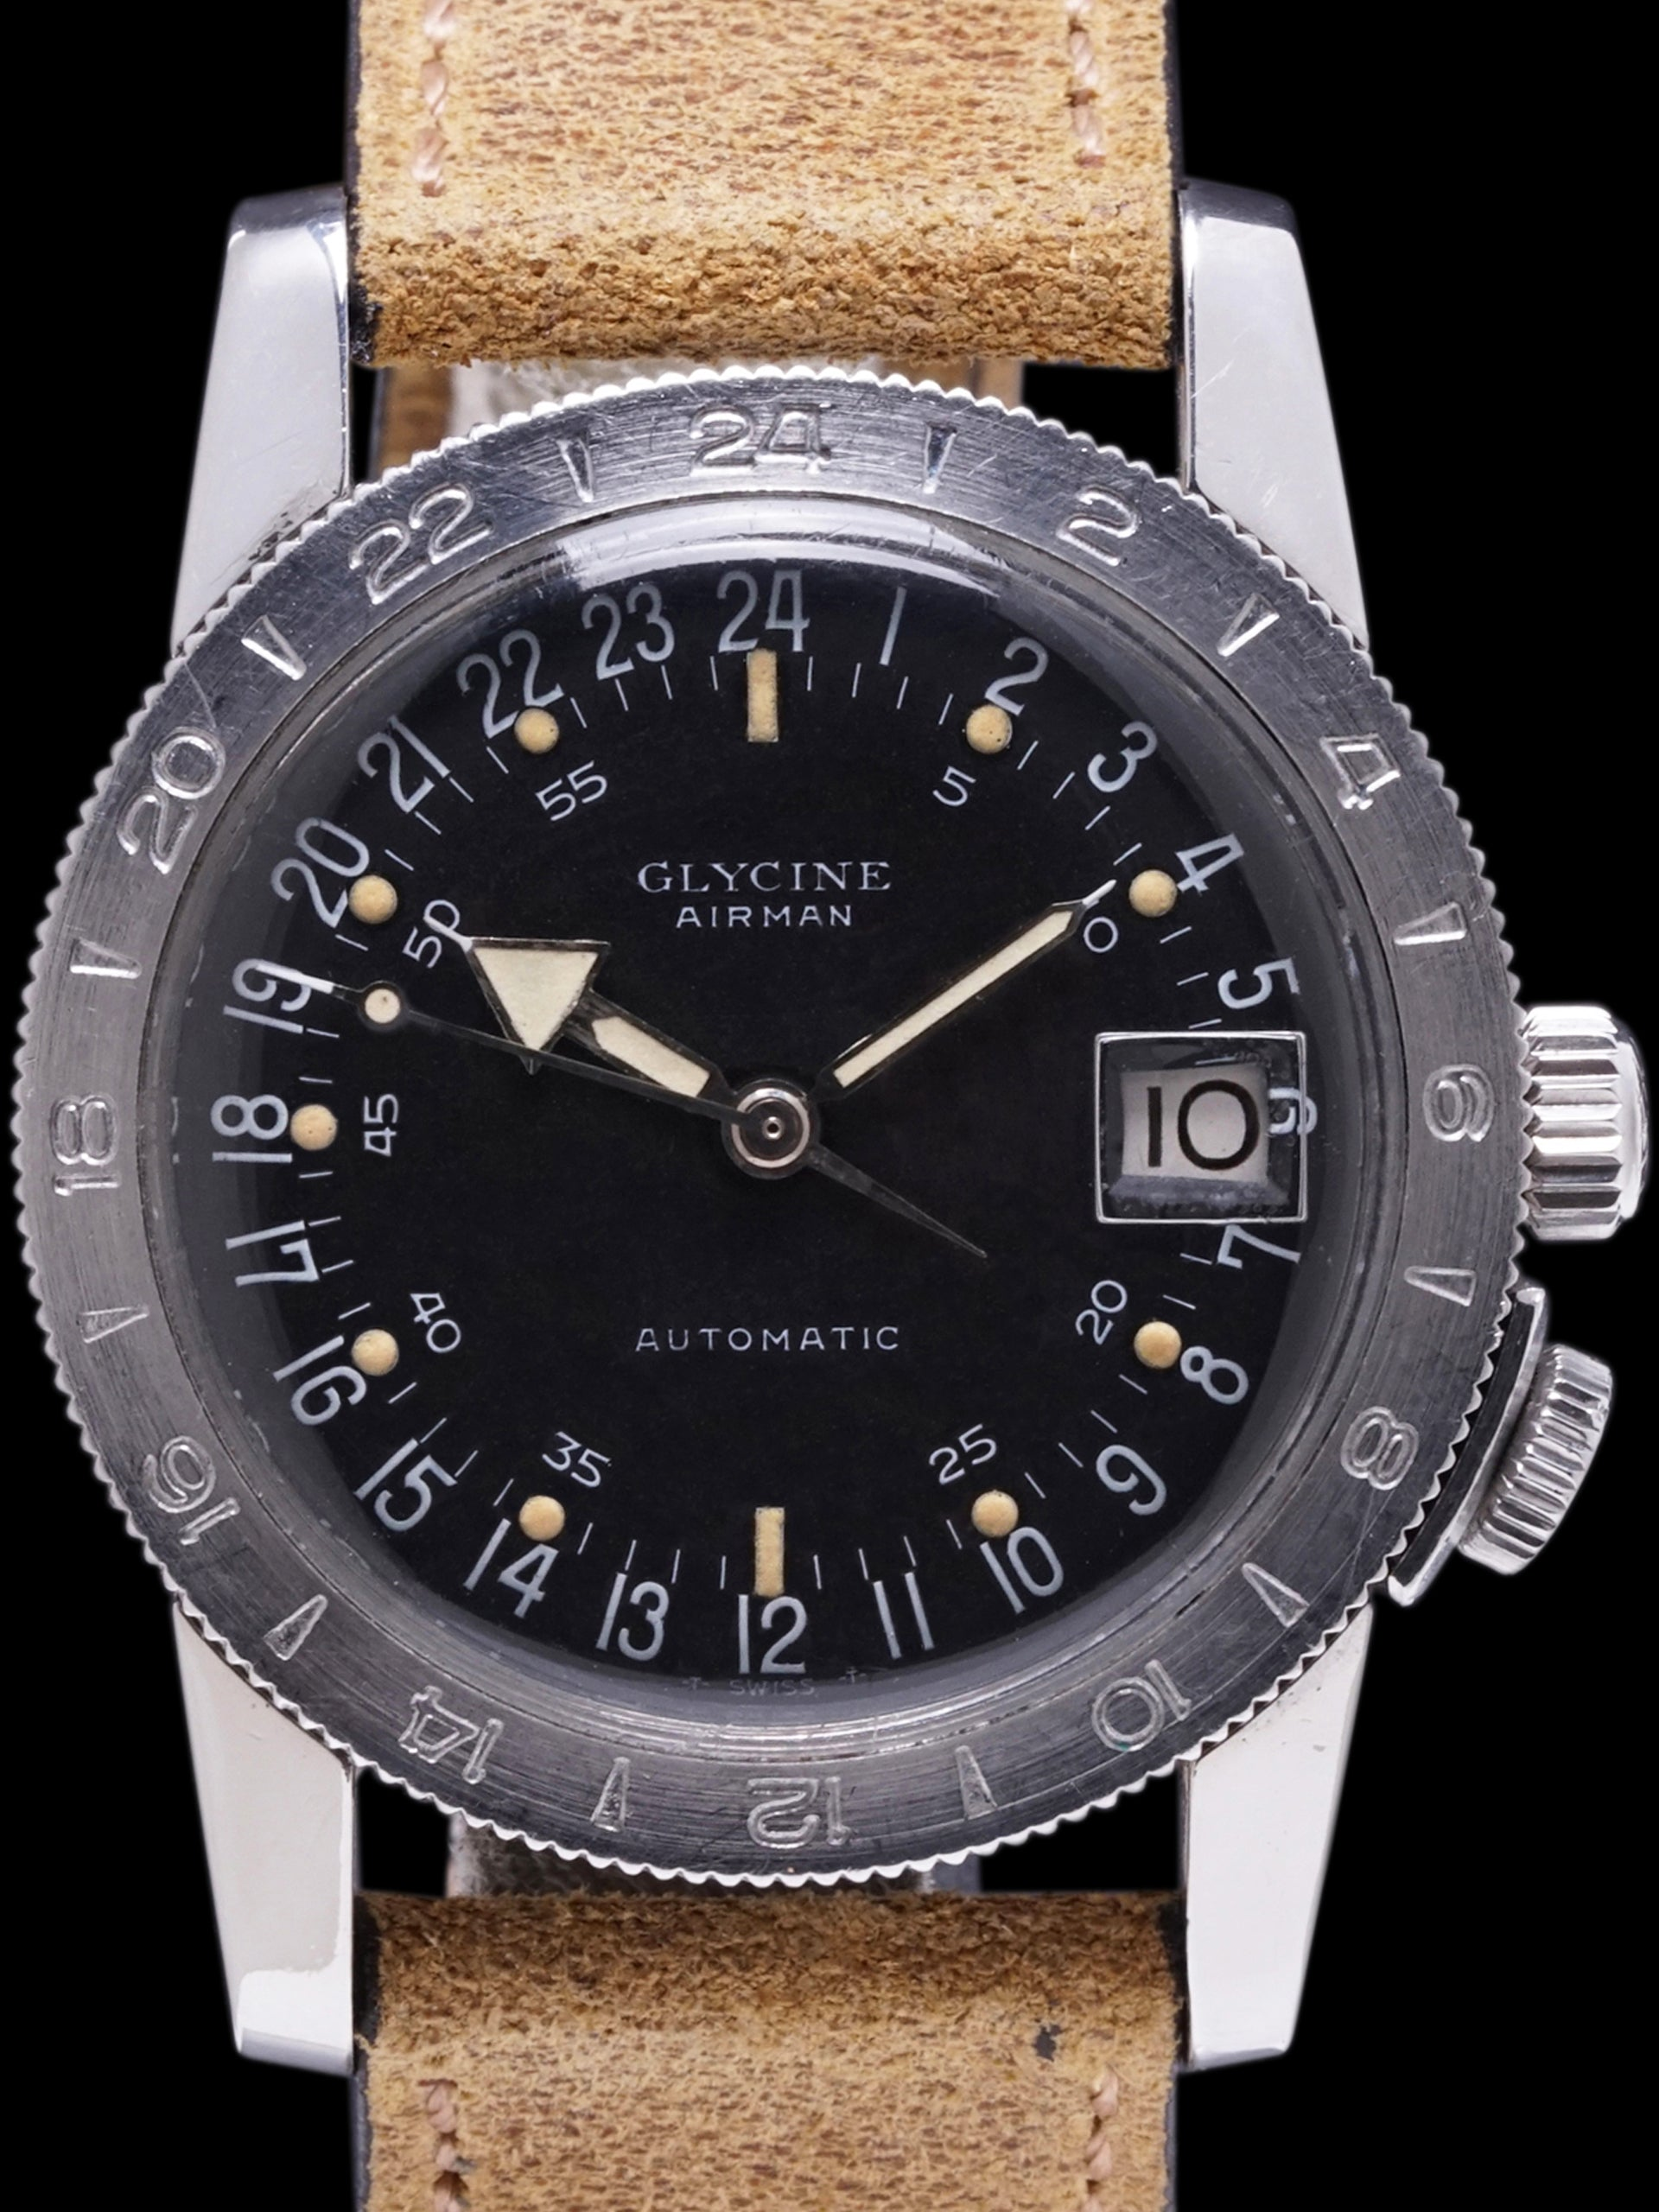 1960s Glycine Airman Automatic